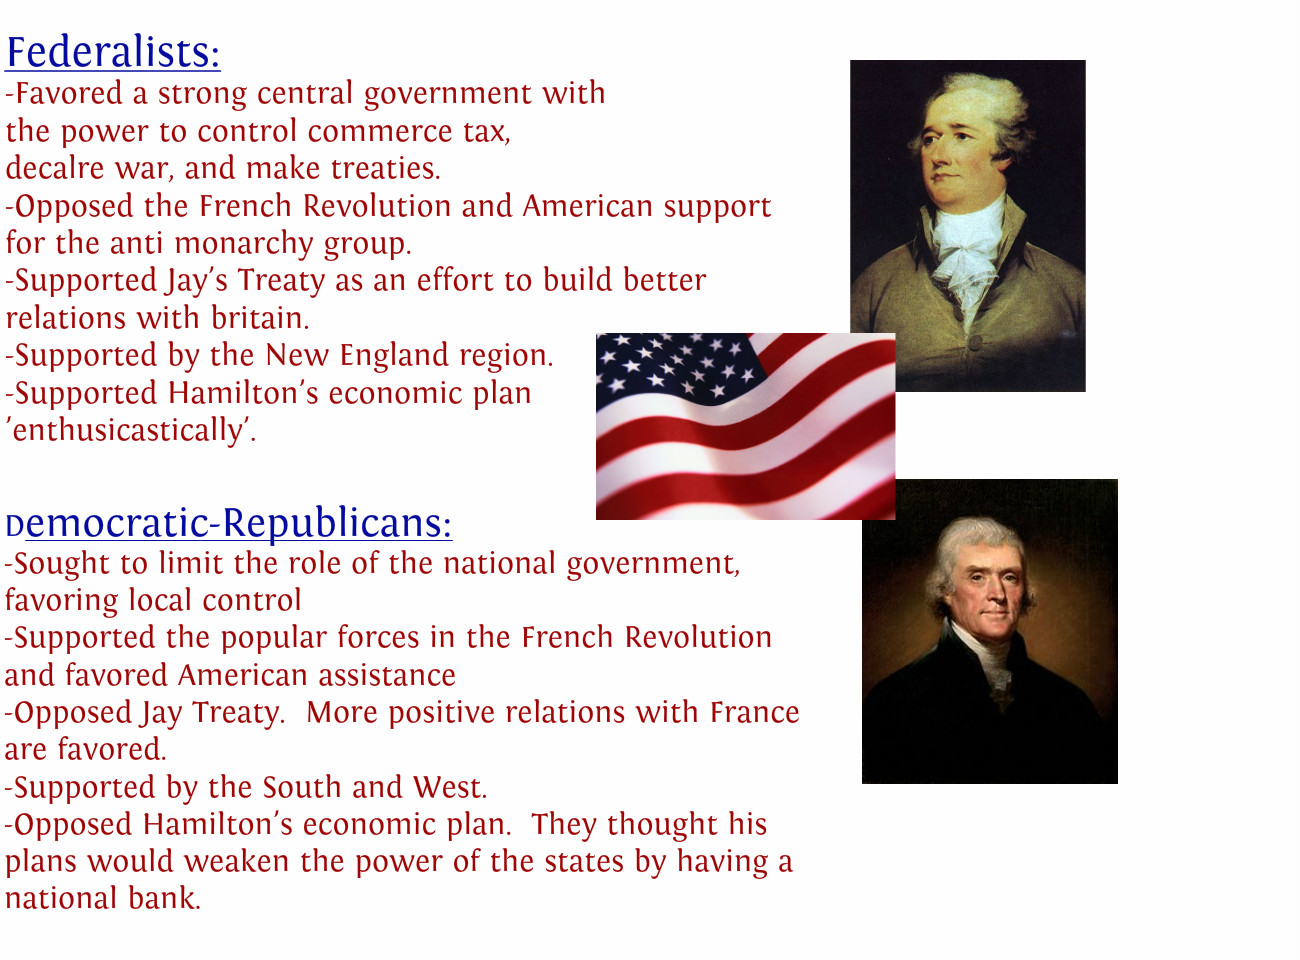 federalists vs democratic republicans essay essay The united states began as a weak, newborn nation that grew into a large, self-supporting country with a governing body unique to this time period - federalists vs democratic-republicans introduction as the government grew and the nation prospered, the rise of leaders and political figures came about and with this, conflicting principles and ideology spawned,.